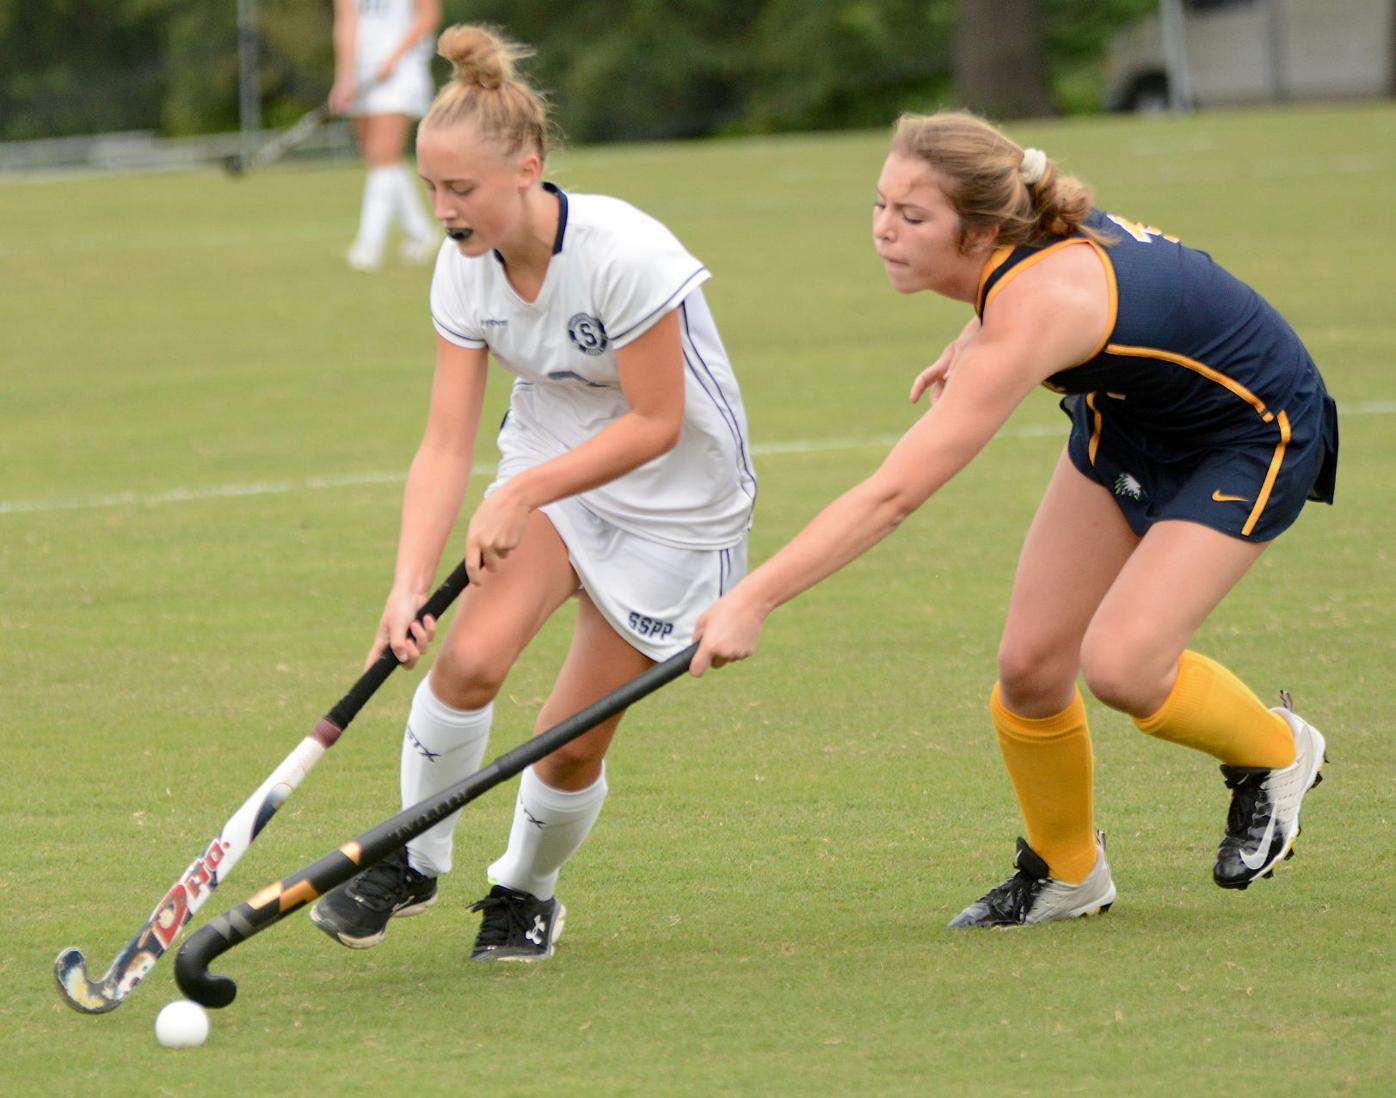 SSPP-HOLLY GROVE FIELD HOCKEY